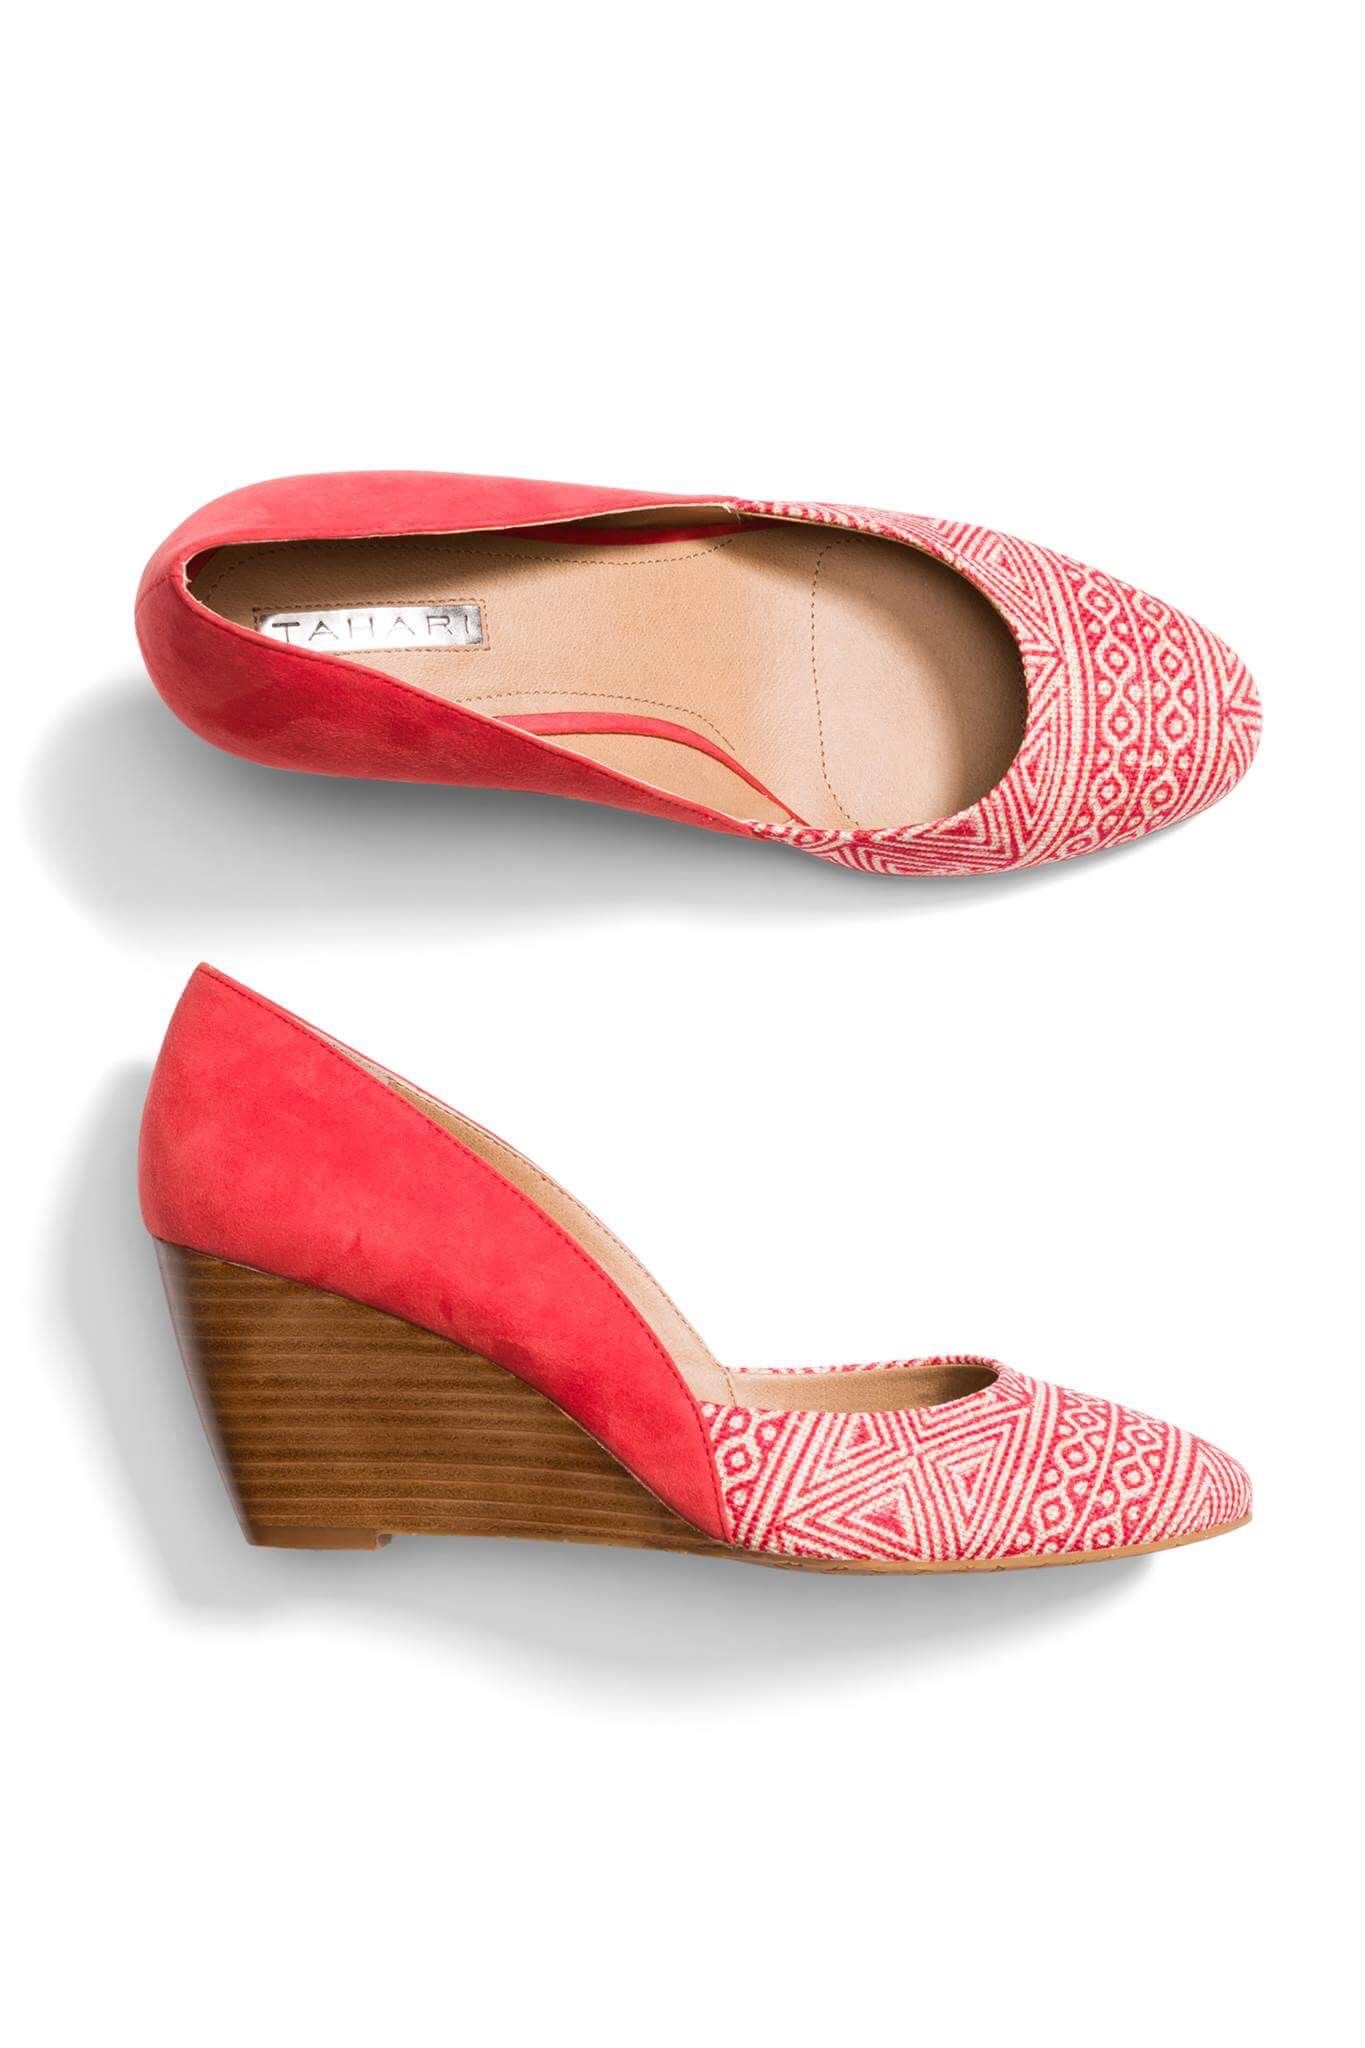 260b19b5876a Tahari Red Wedge Shoes - Stitch Fix Style Quiz